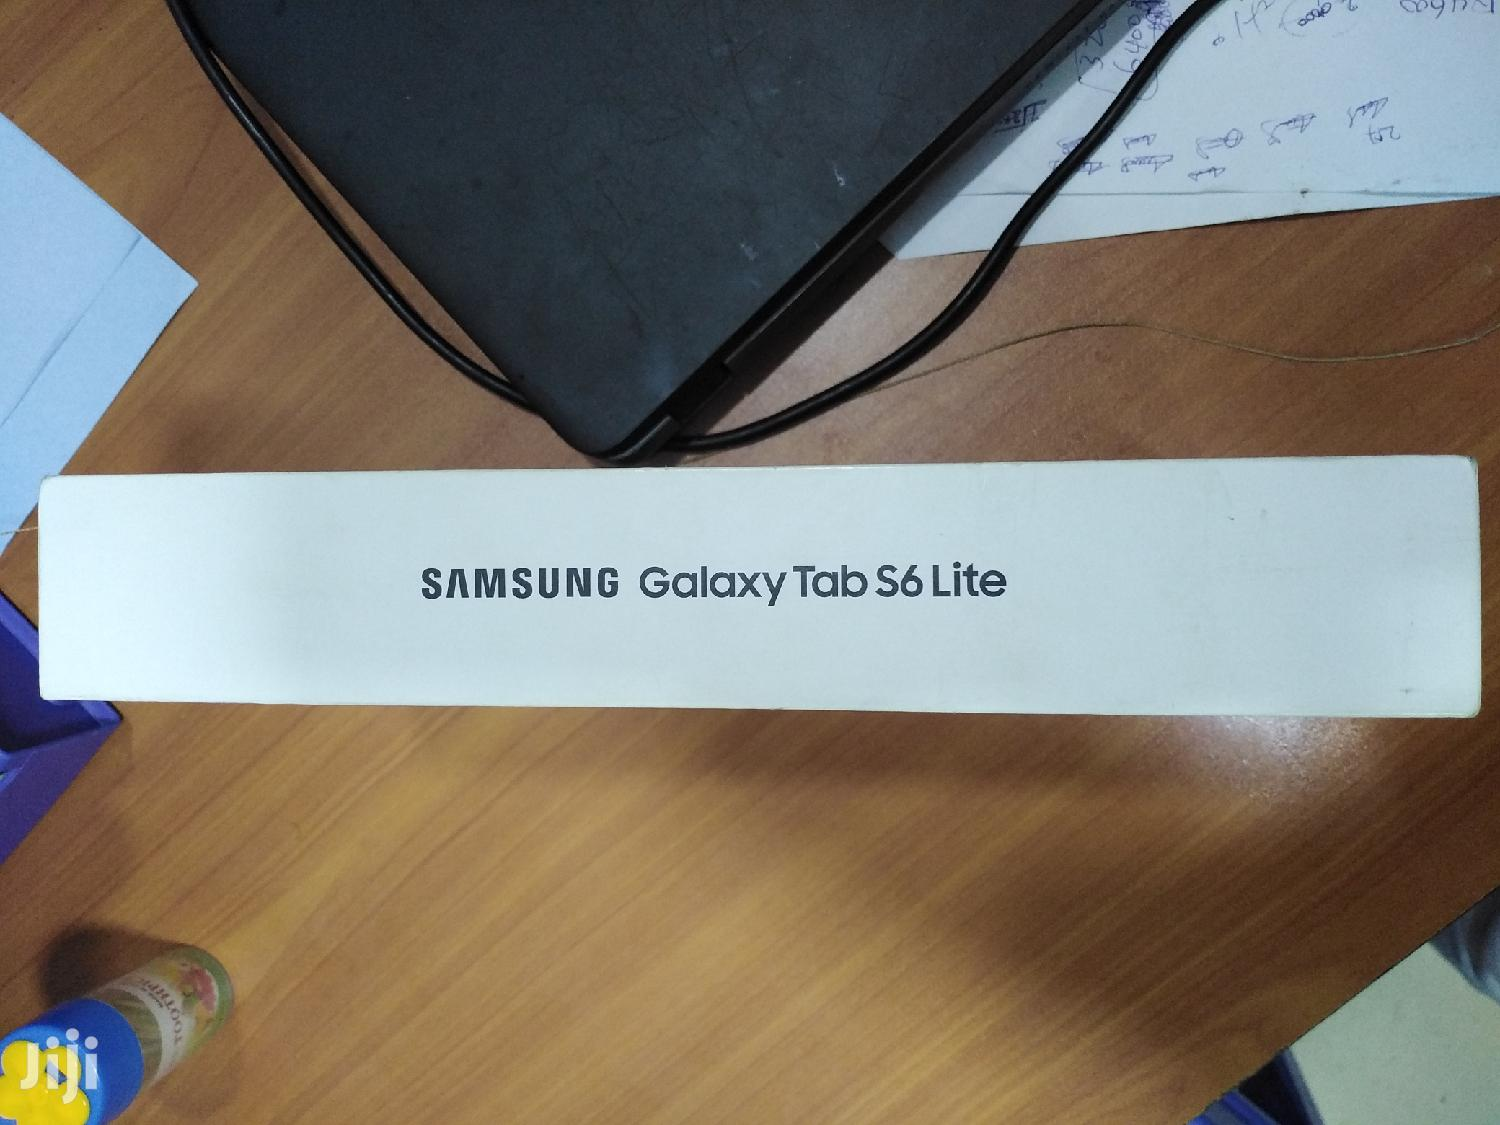 Archive: New Samsung Galaxy Tab S6 Lite 64 GB Black